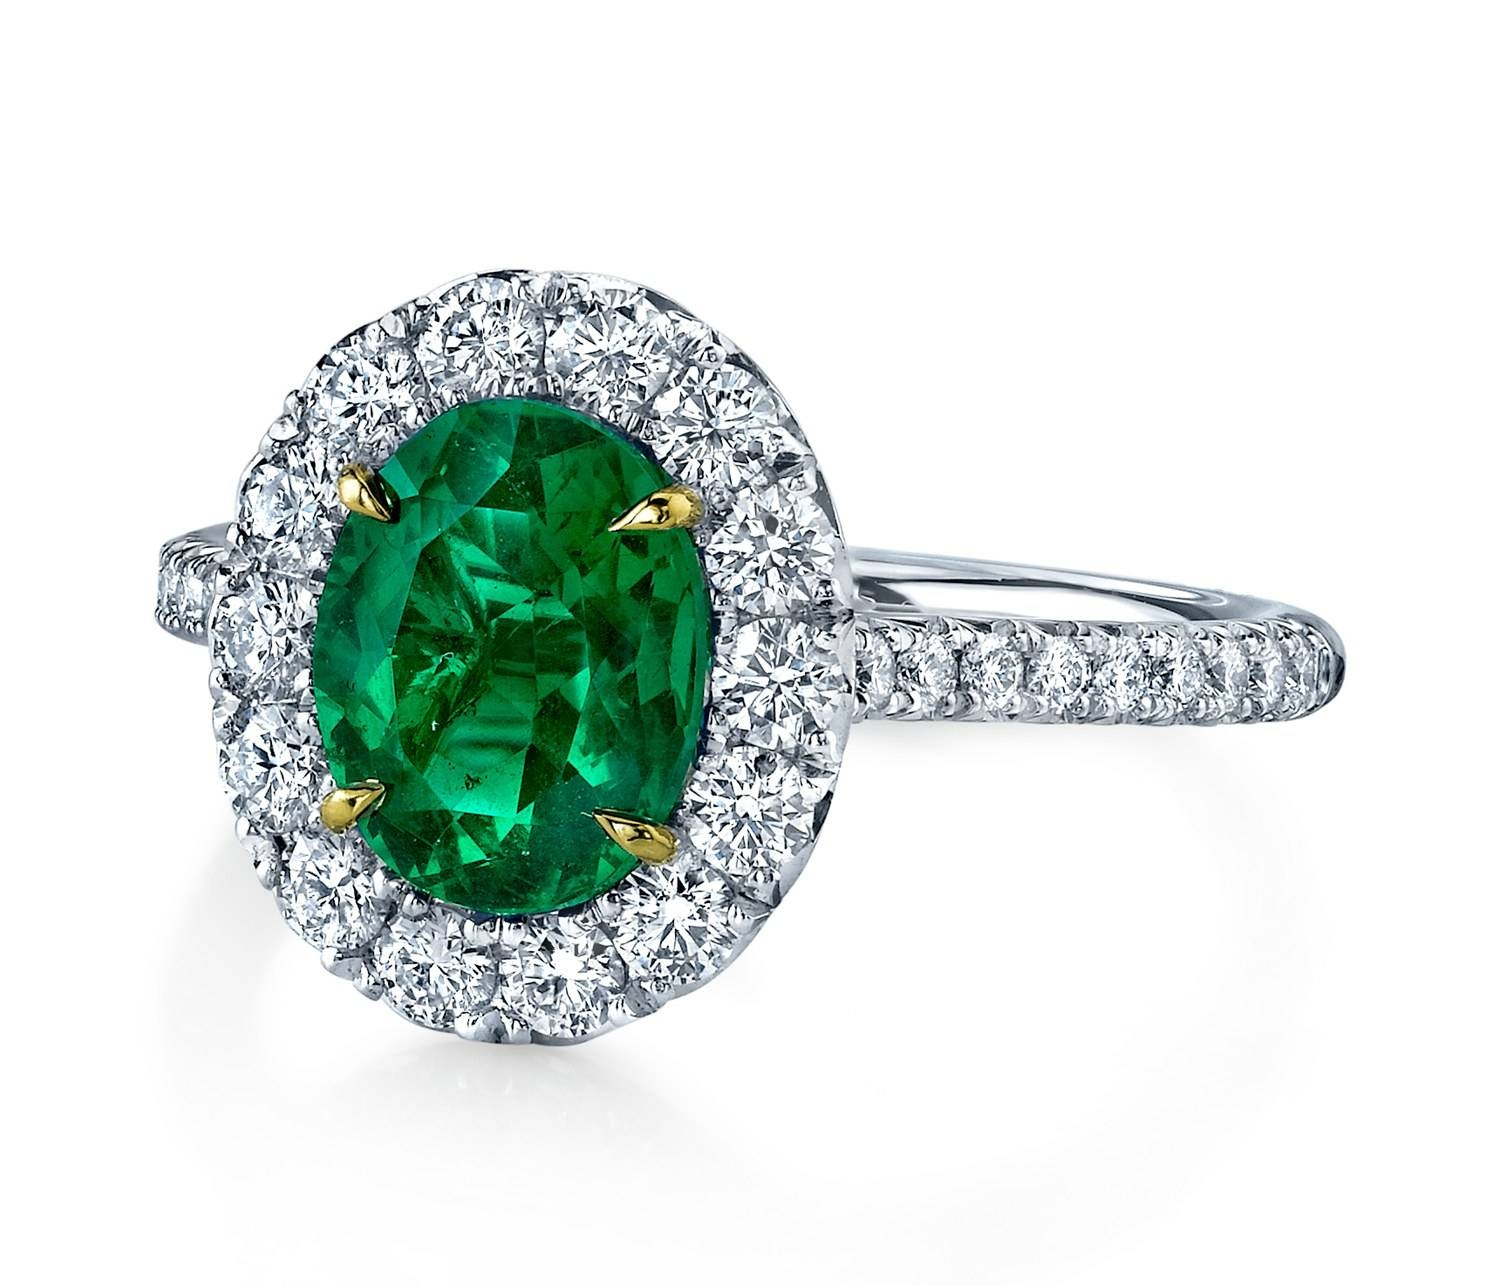 30 Diamond Engagement Rings So Sparkly You'll Need Sunglasses Regarding Engagement Rings With Emerald (View 13 of 15)